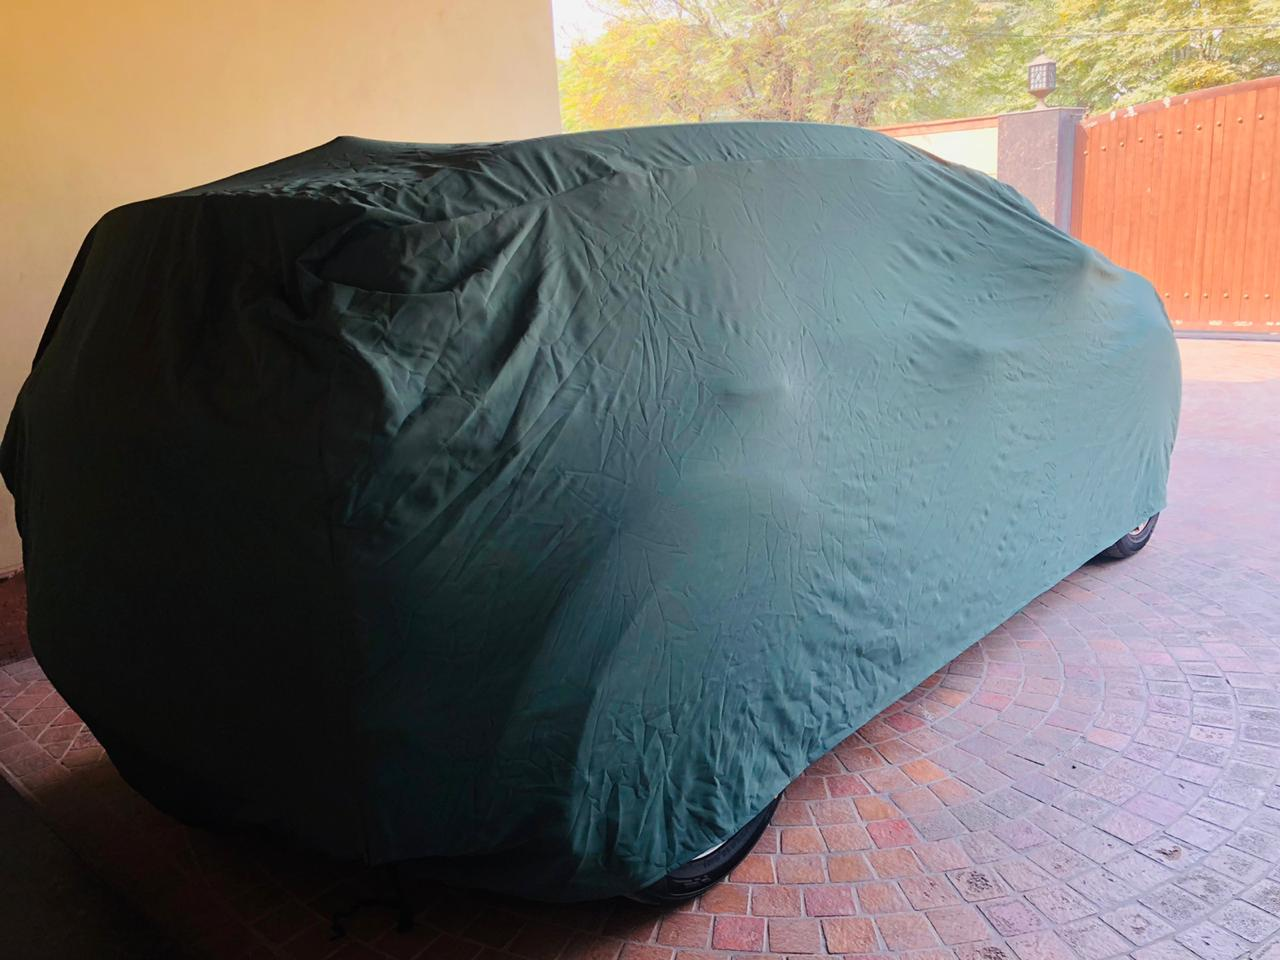 Suzuki MR Wagon Model 2012-2018 Microfiber Car Top Cover